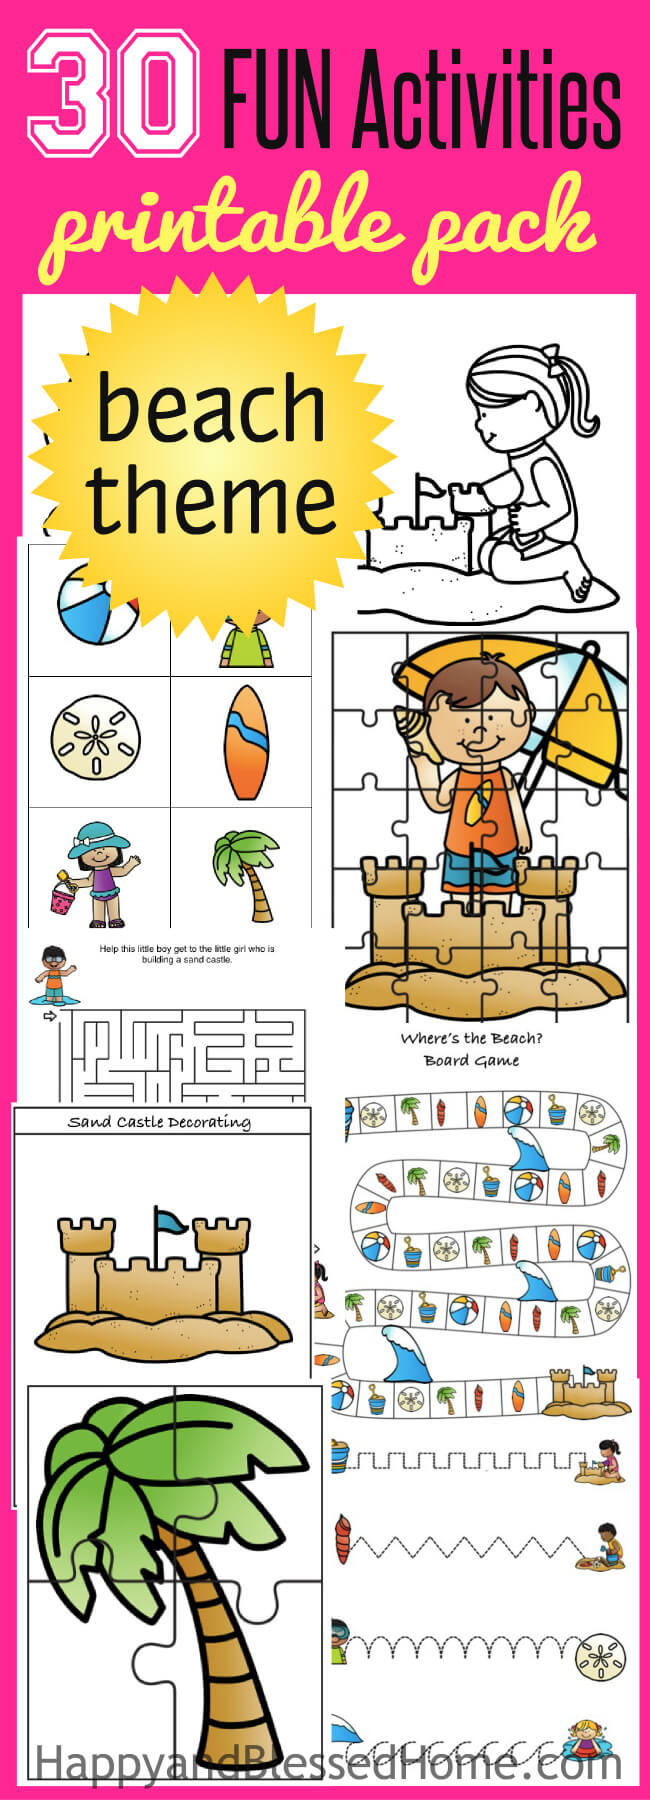 30 FUN Beach Themed Activities Printables Pack - great fun for kids!